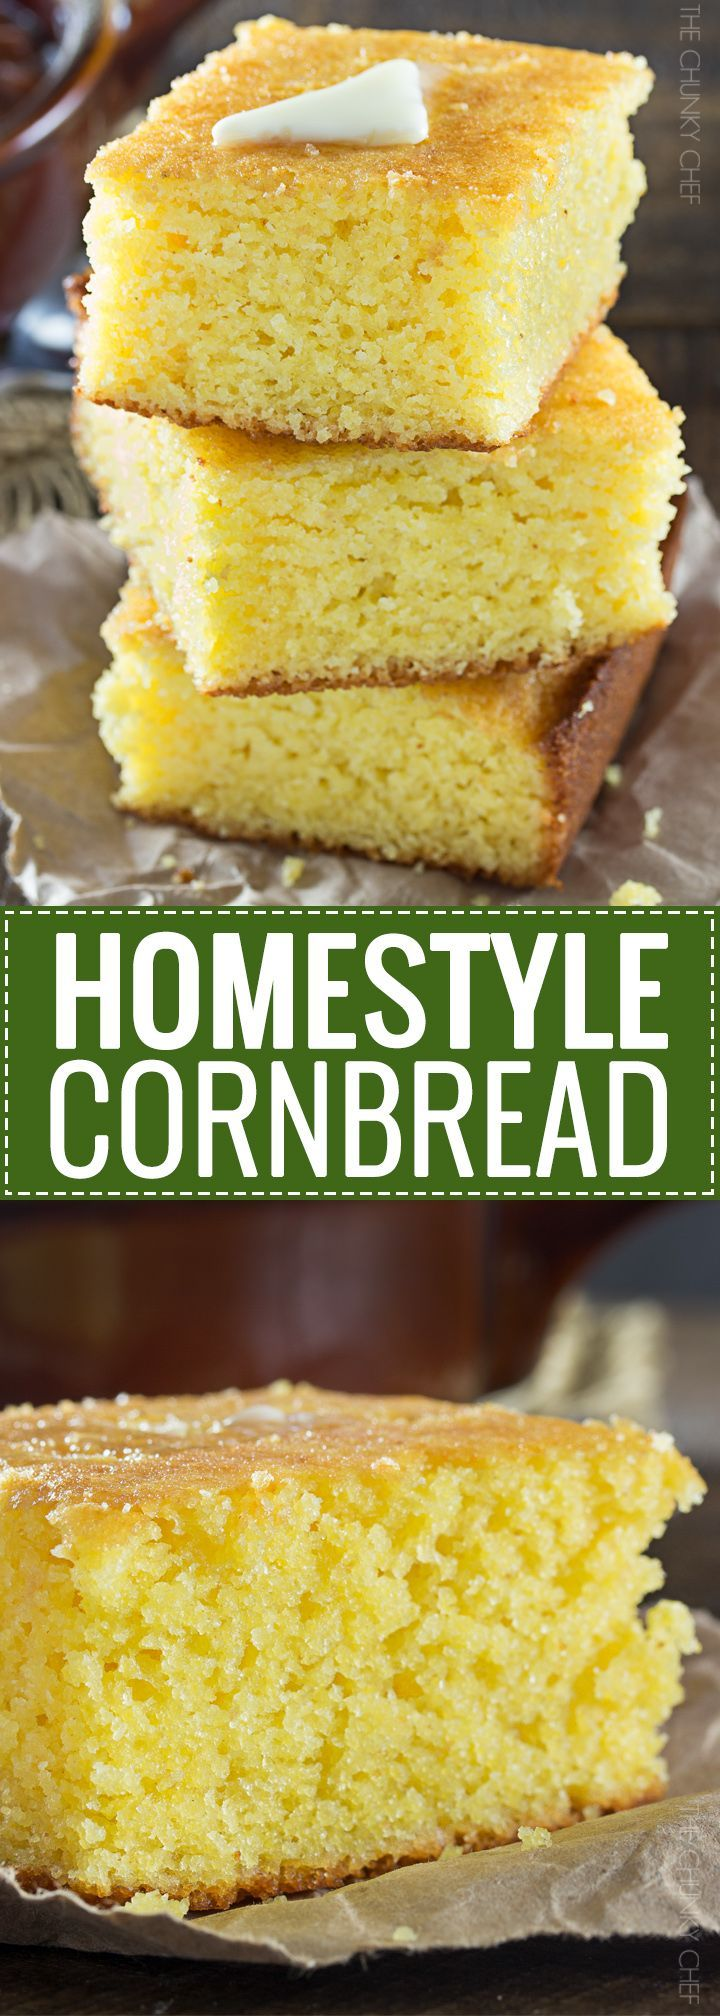 Homestyle Cornbread | This homestyle, baked from scratch cornbread is a perfect mix of savory southern cornbread and sweet northern cornbread... fluffy and soft, it's the only recipe you'll need! | http://thechunkychef.com